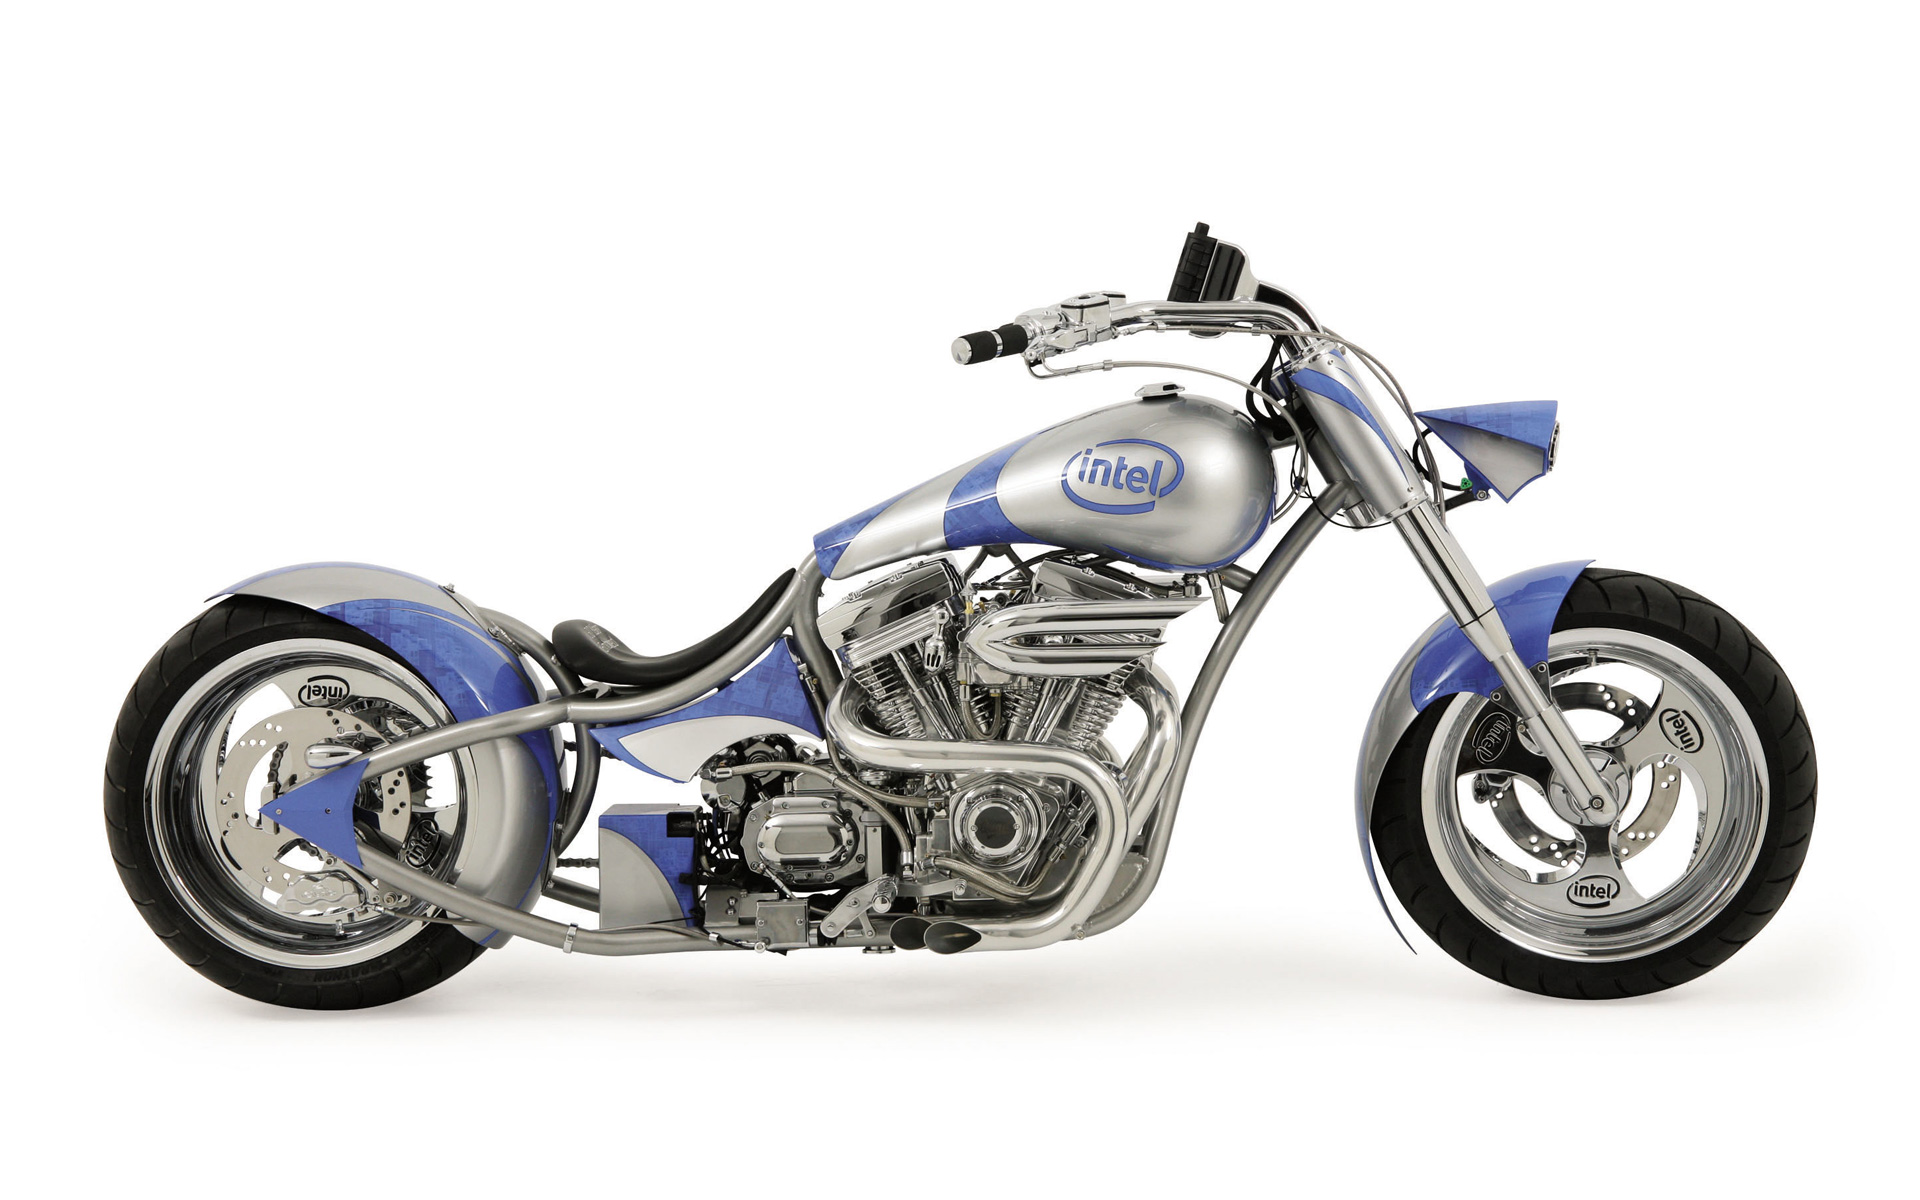 The Most Powerful and Technologically Advanced Intel Bike ...